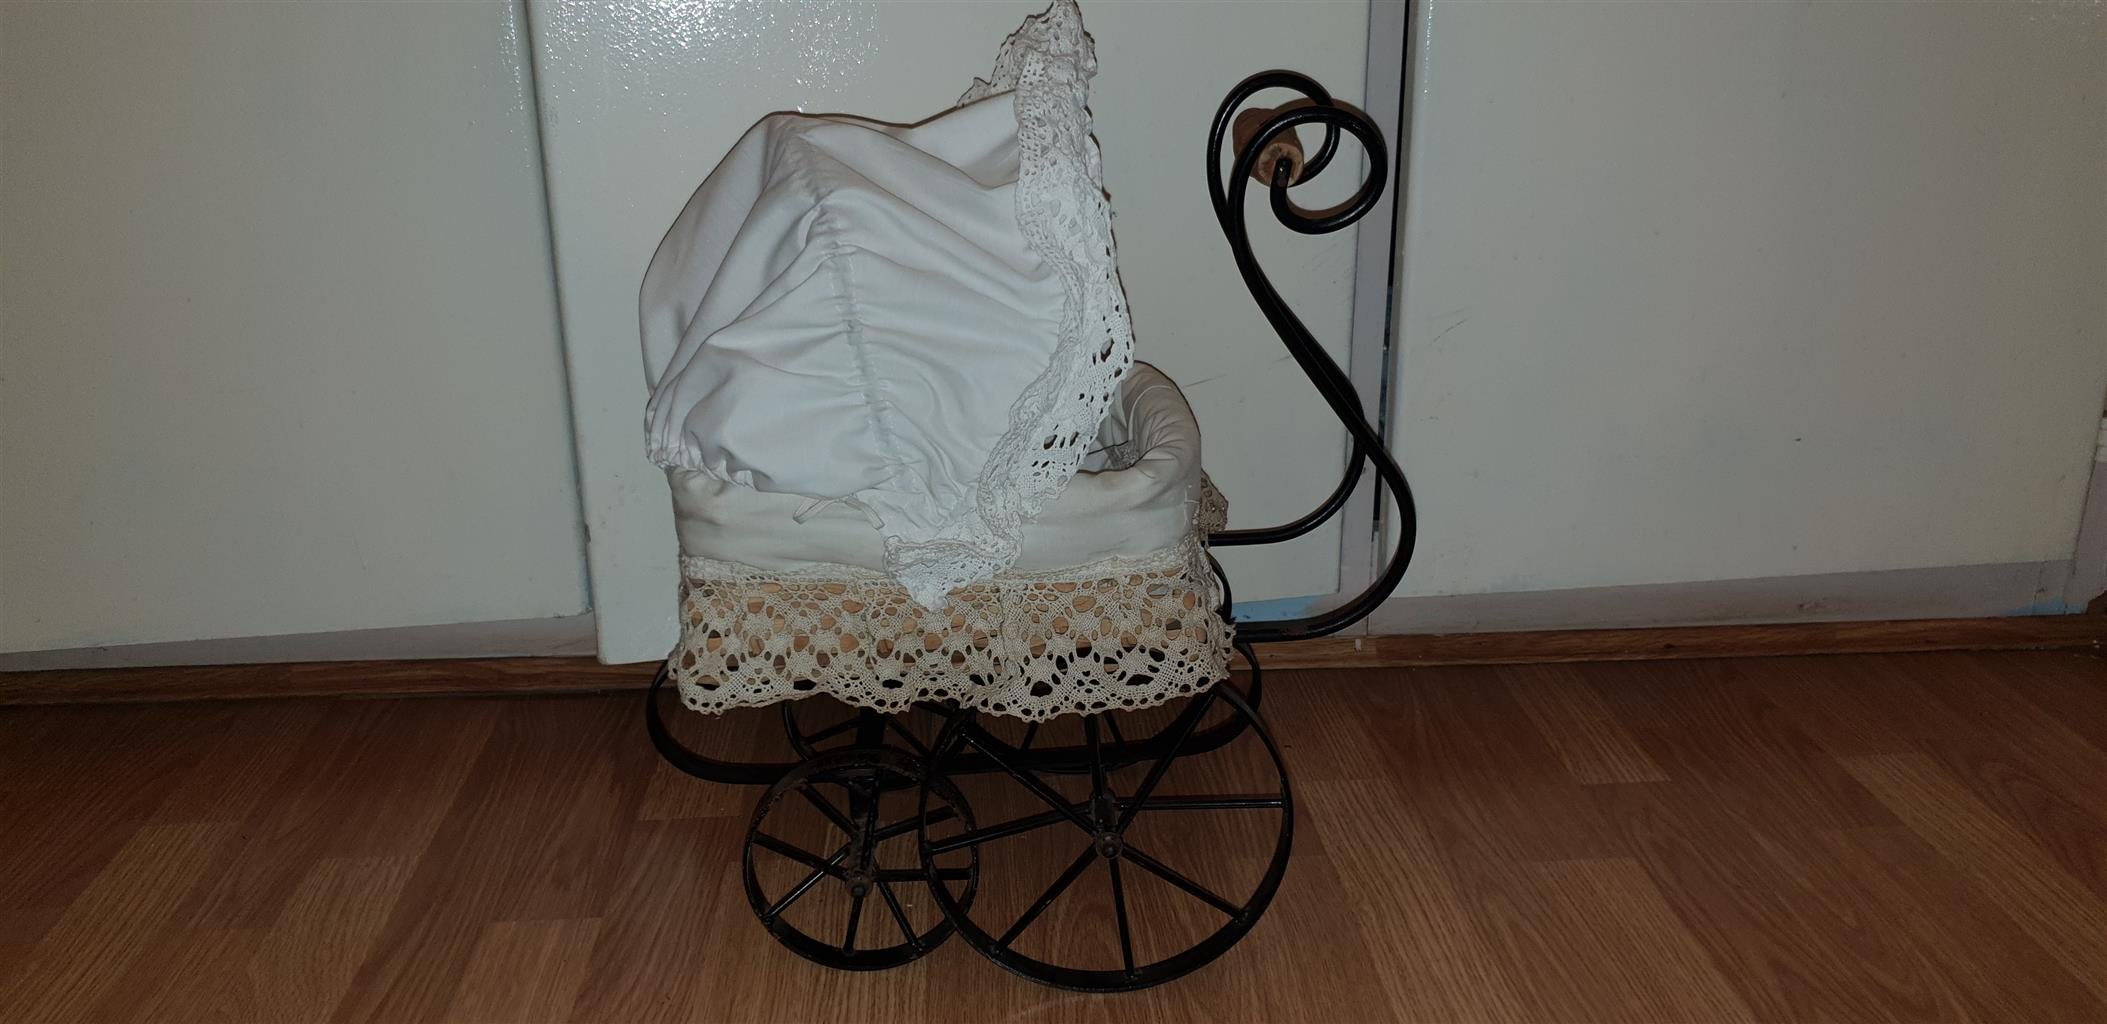 Vintage Toy Stroller Vintage Doll Stroller With Doll And Bedding